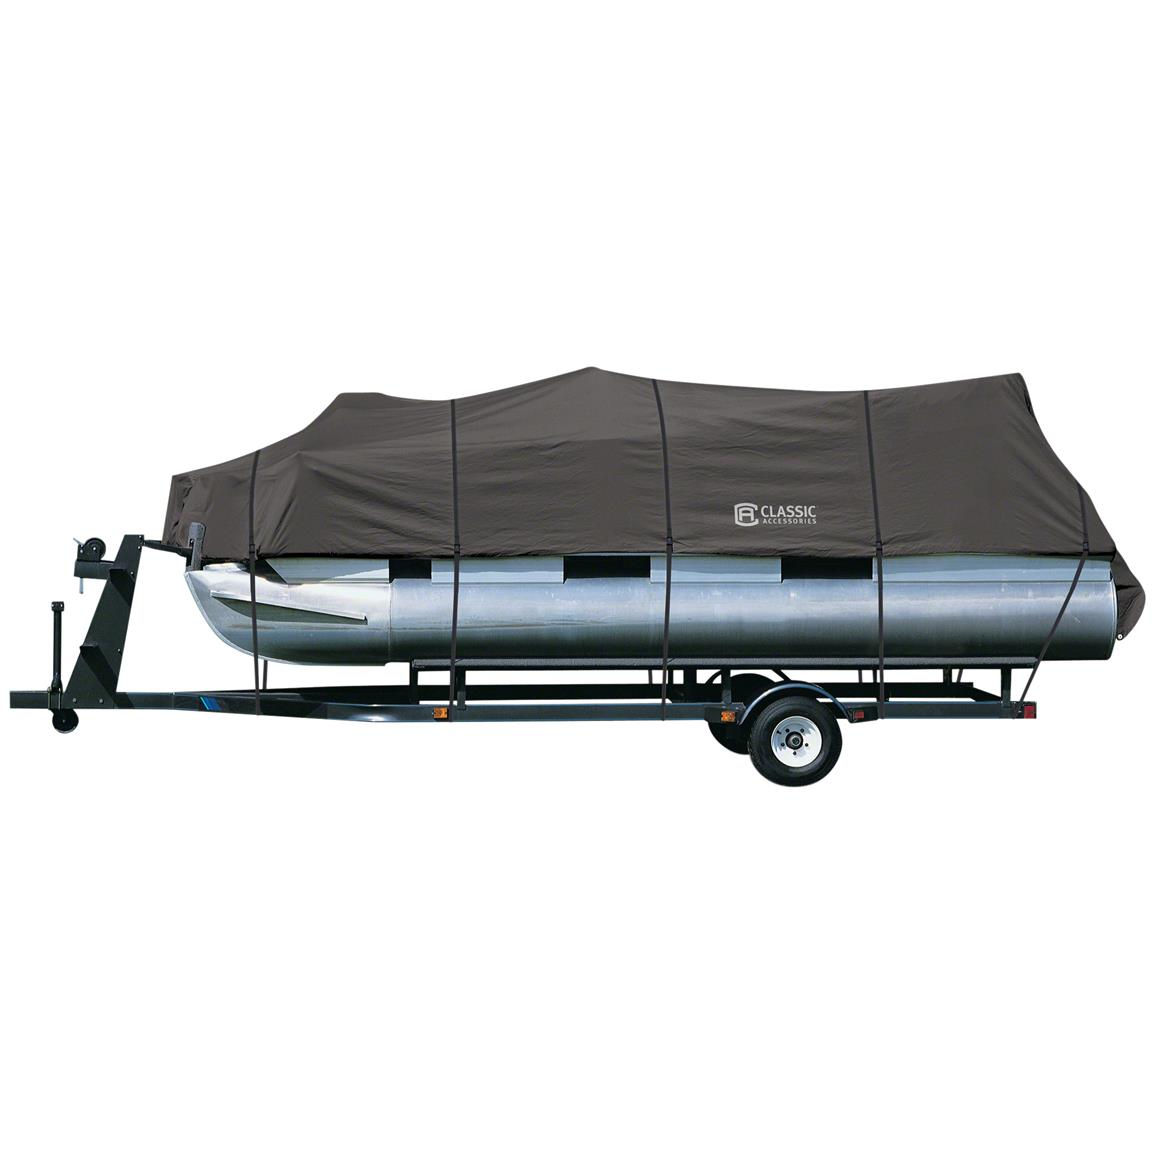 Classic Accessories™ StormPRO™ Pontoon Boat Cover